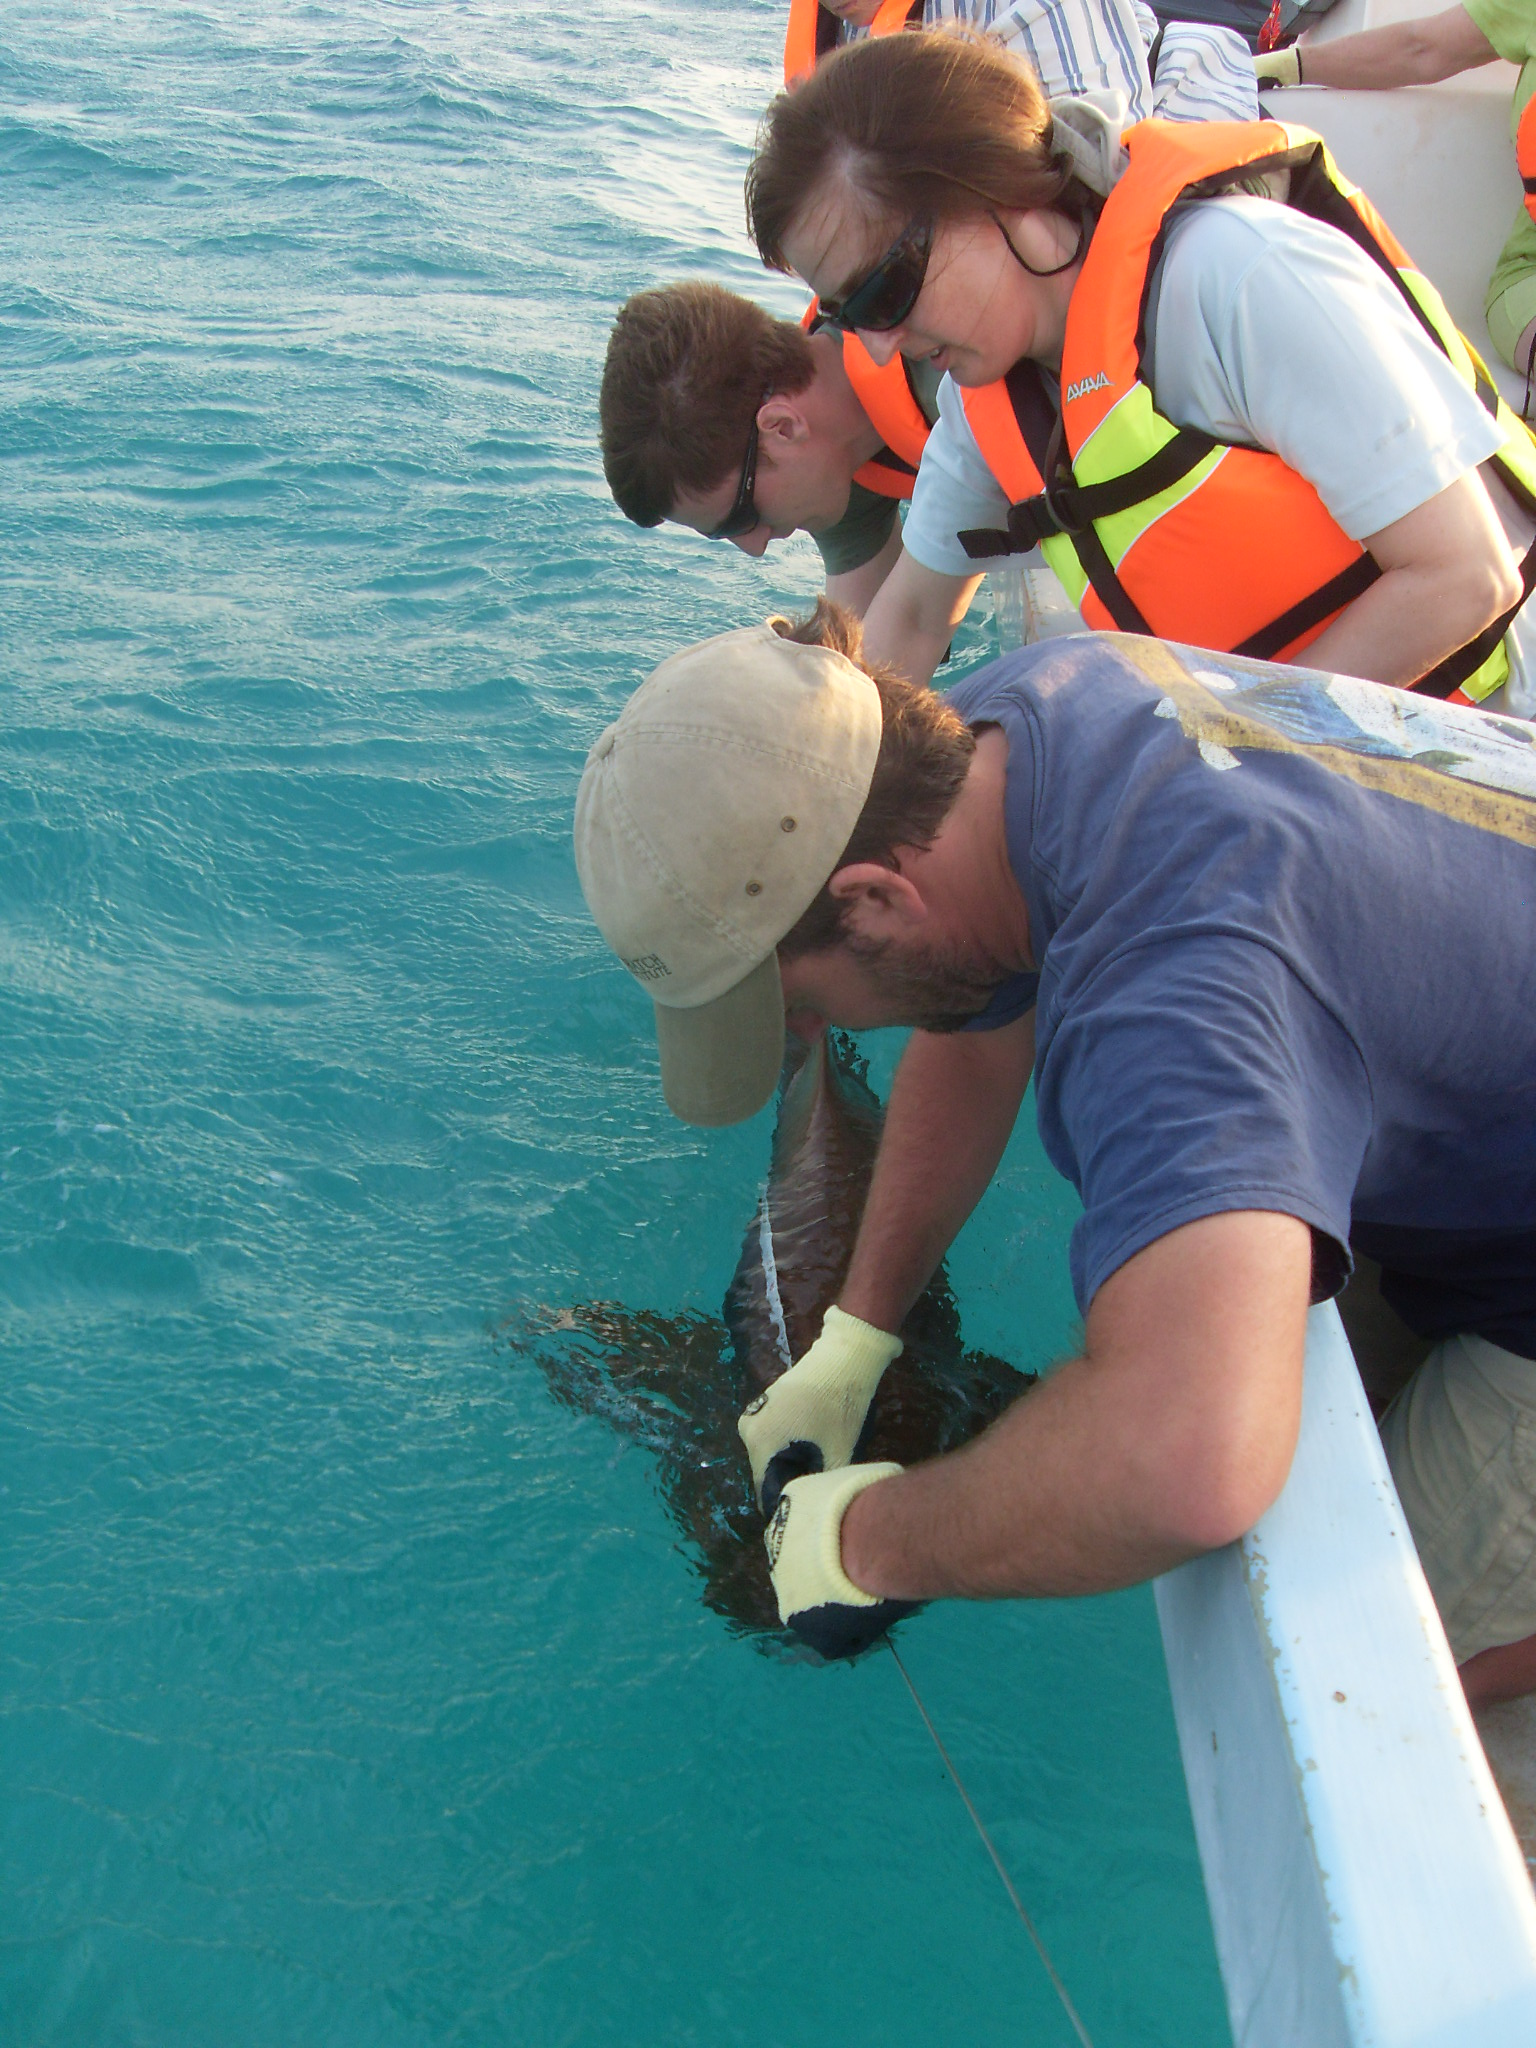 A researcher catches a nurse shark alongside the boat.